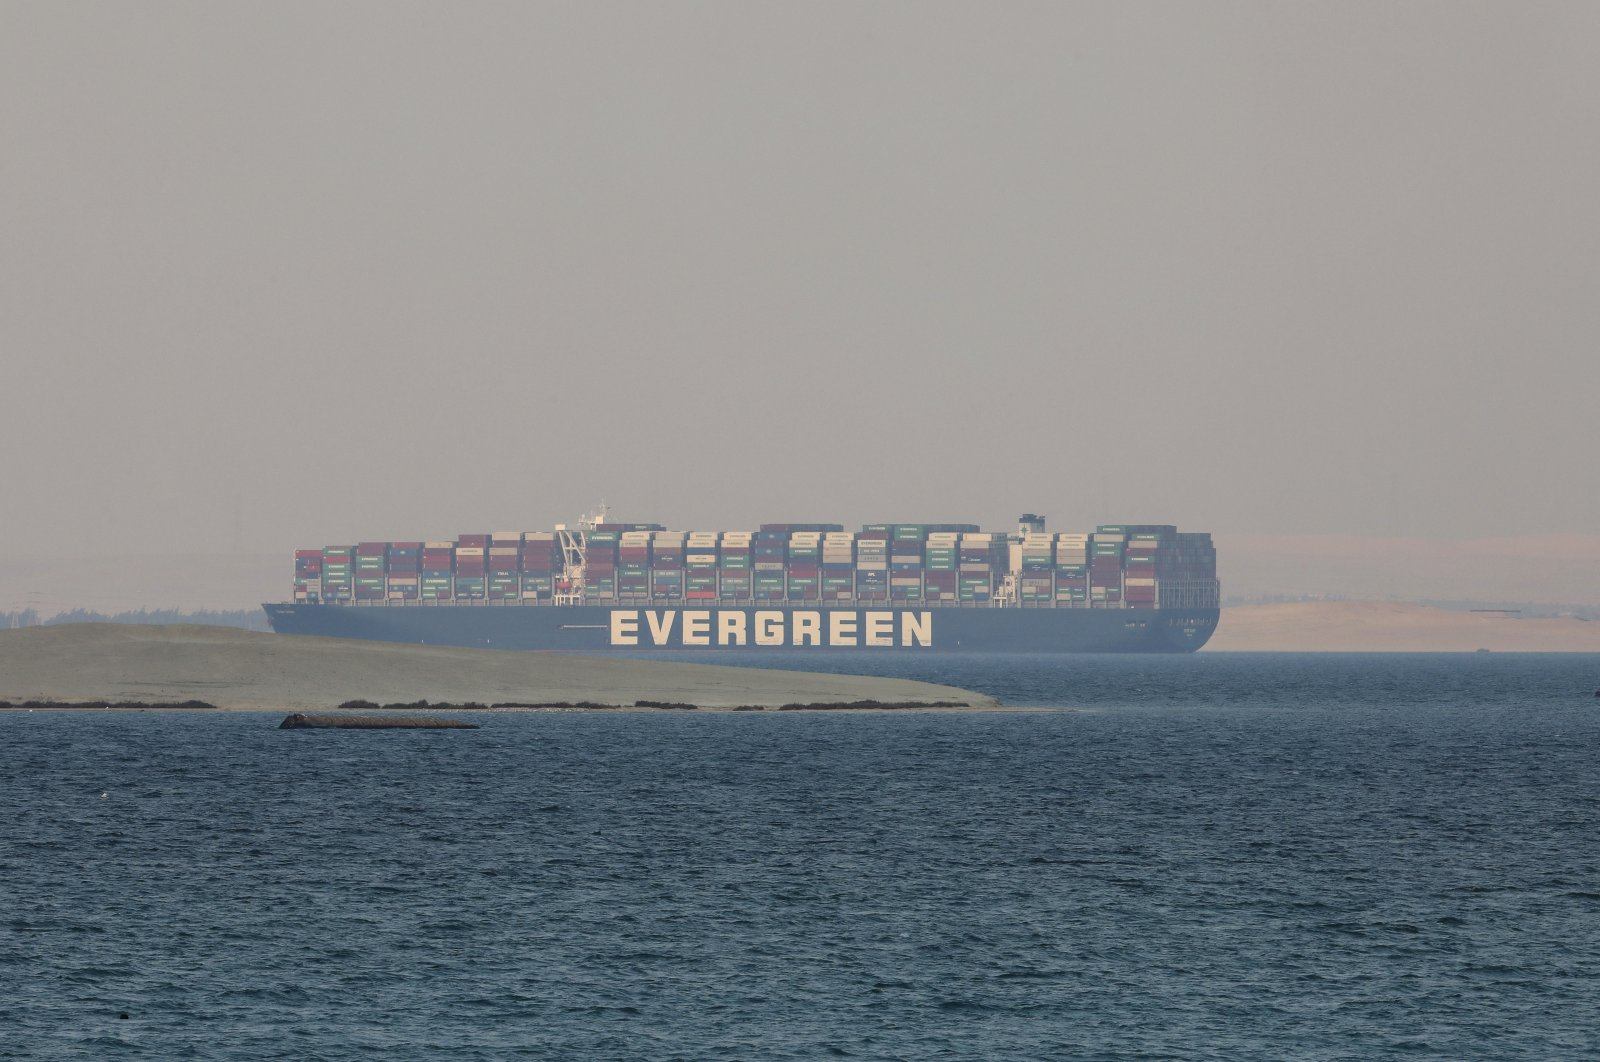 The Ever Given, a Panama-flagged cargo ship, is anchored in Egypt's Great Bitter Lake, March 30, 2021  (AP Photo/Mohamed El-shahed, File)